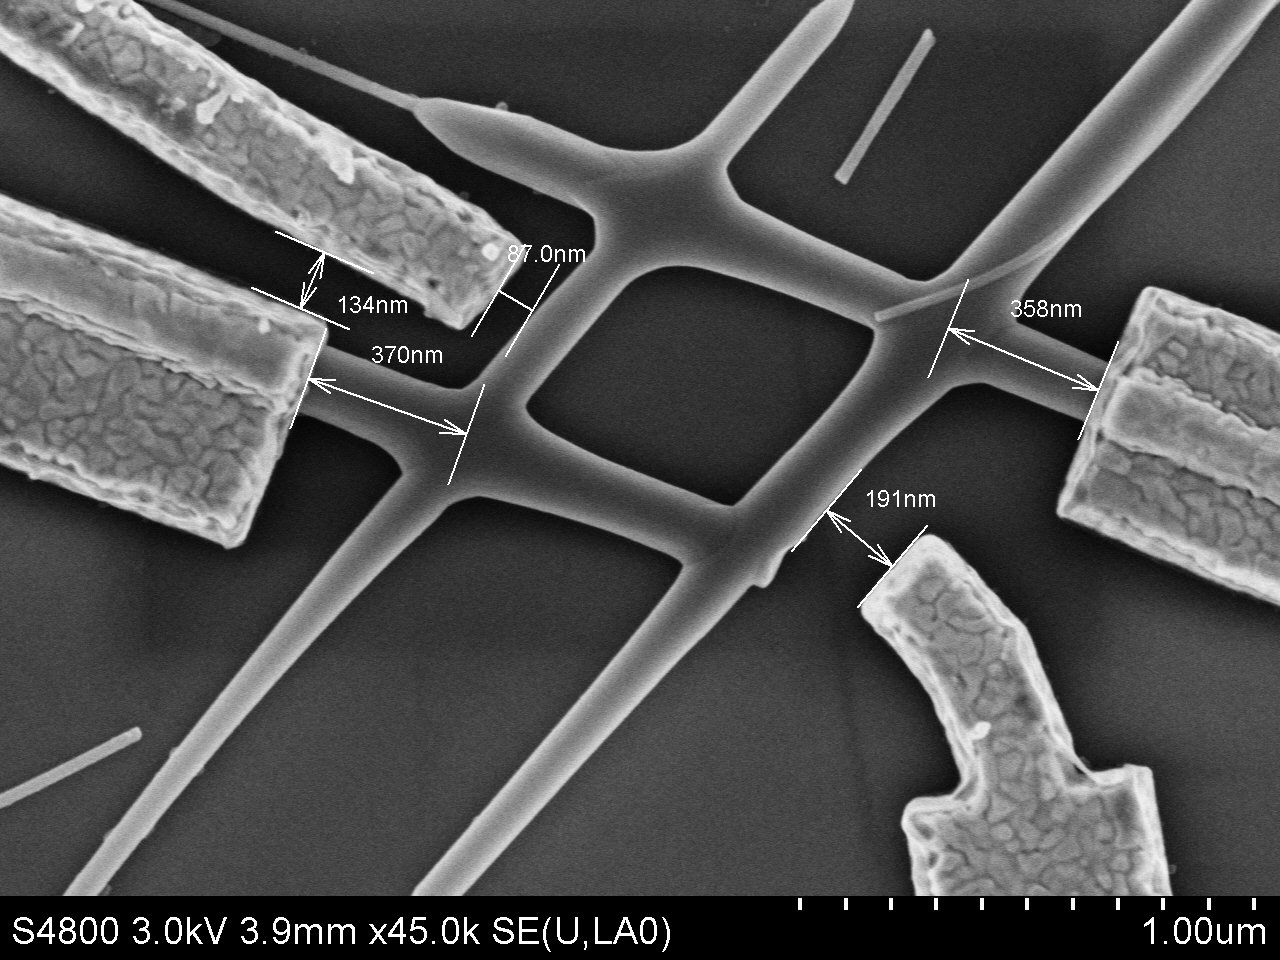 Image with scanning electron microscope of the chip with the 'hashtag' clearly visible